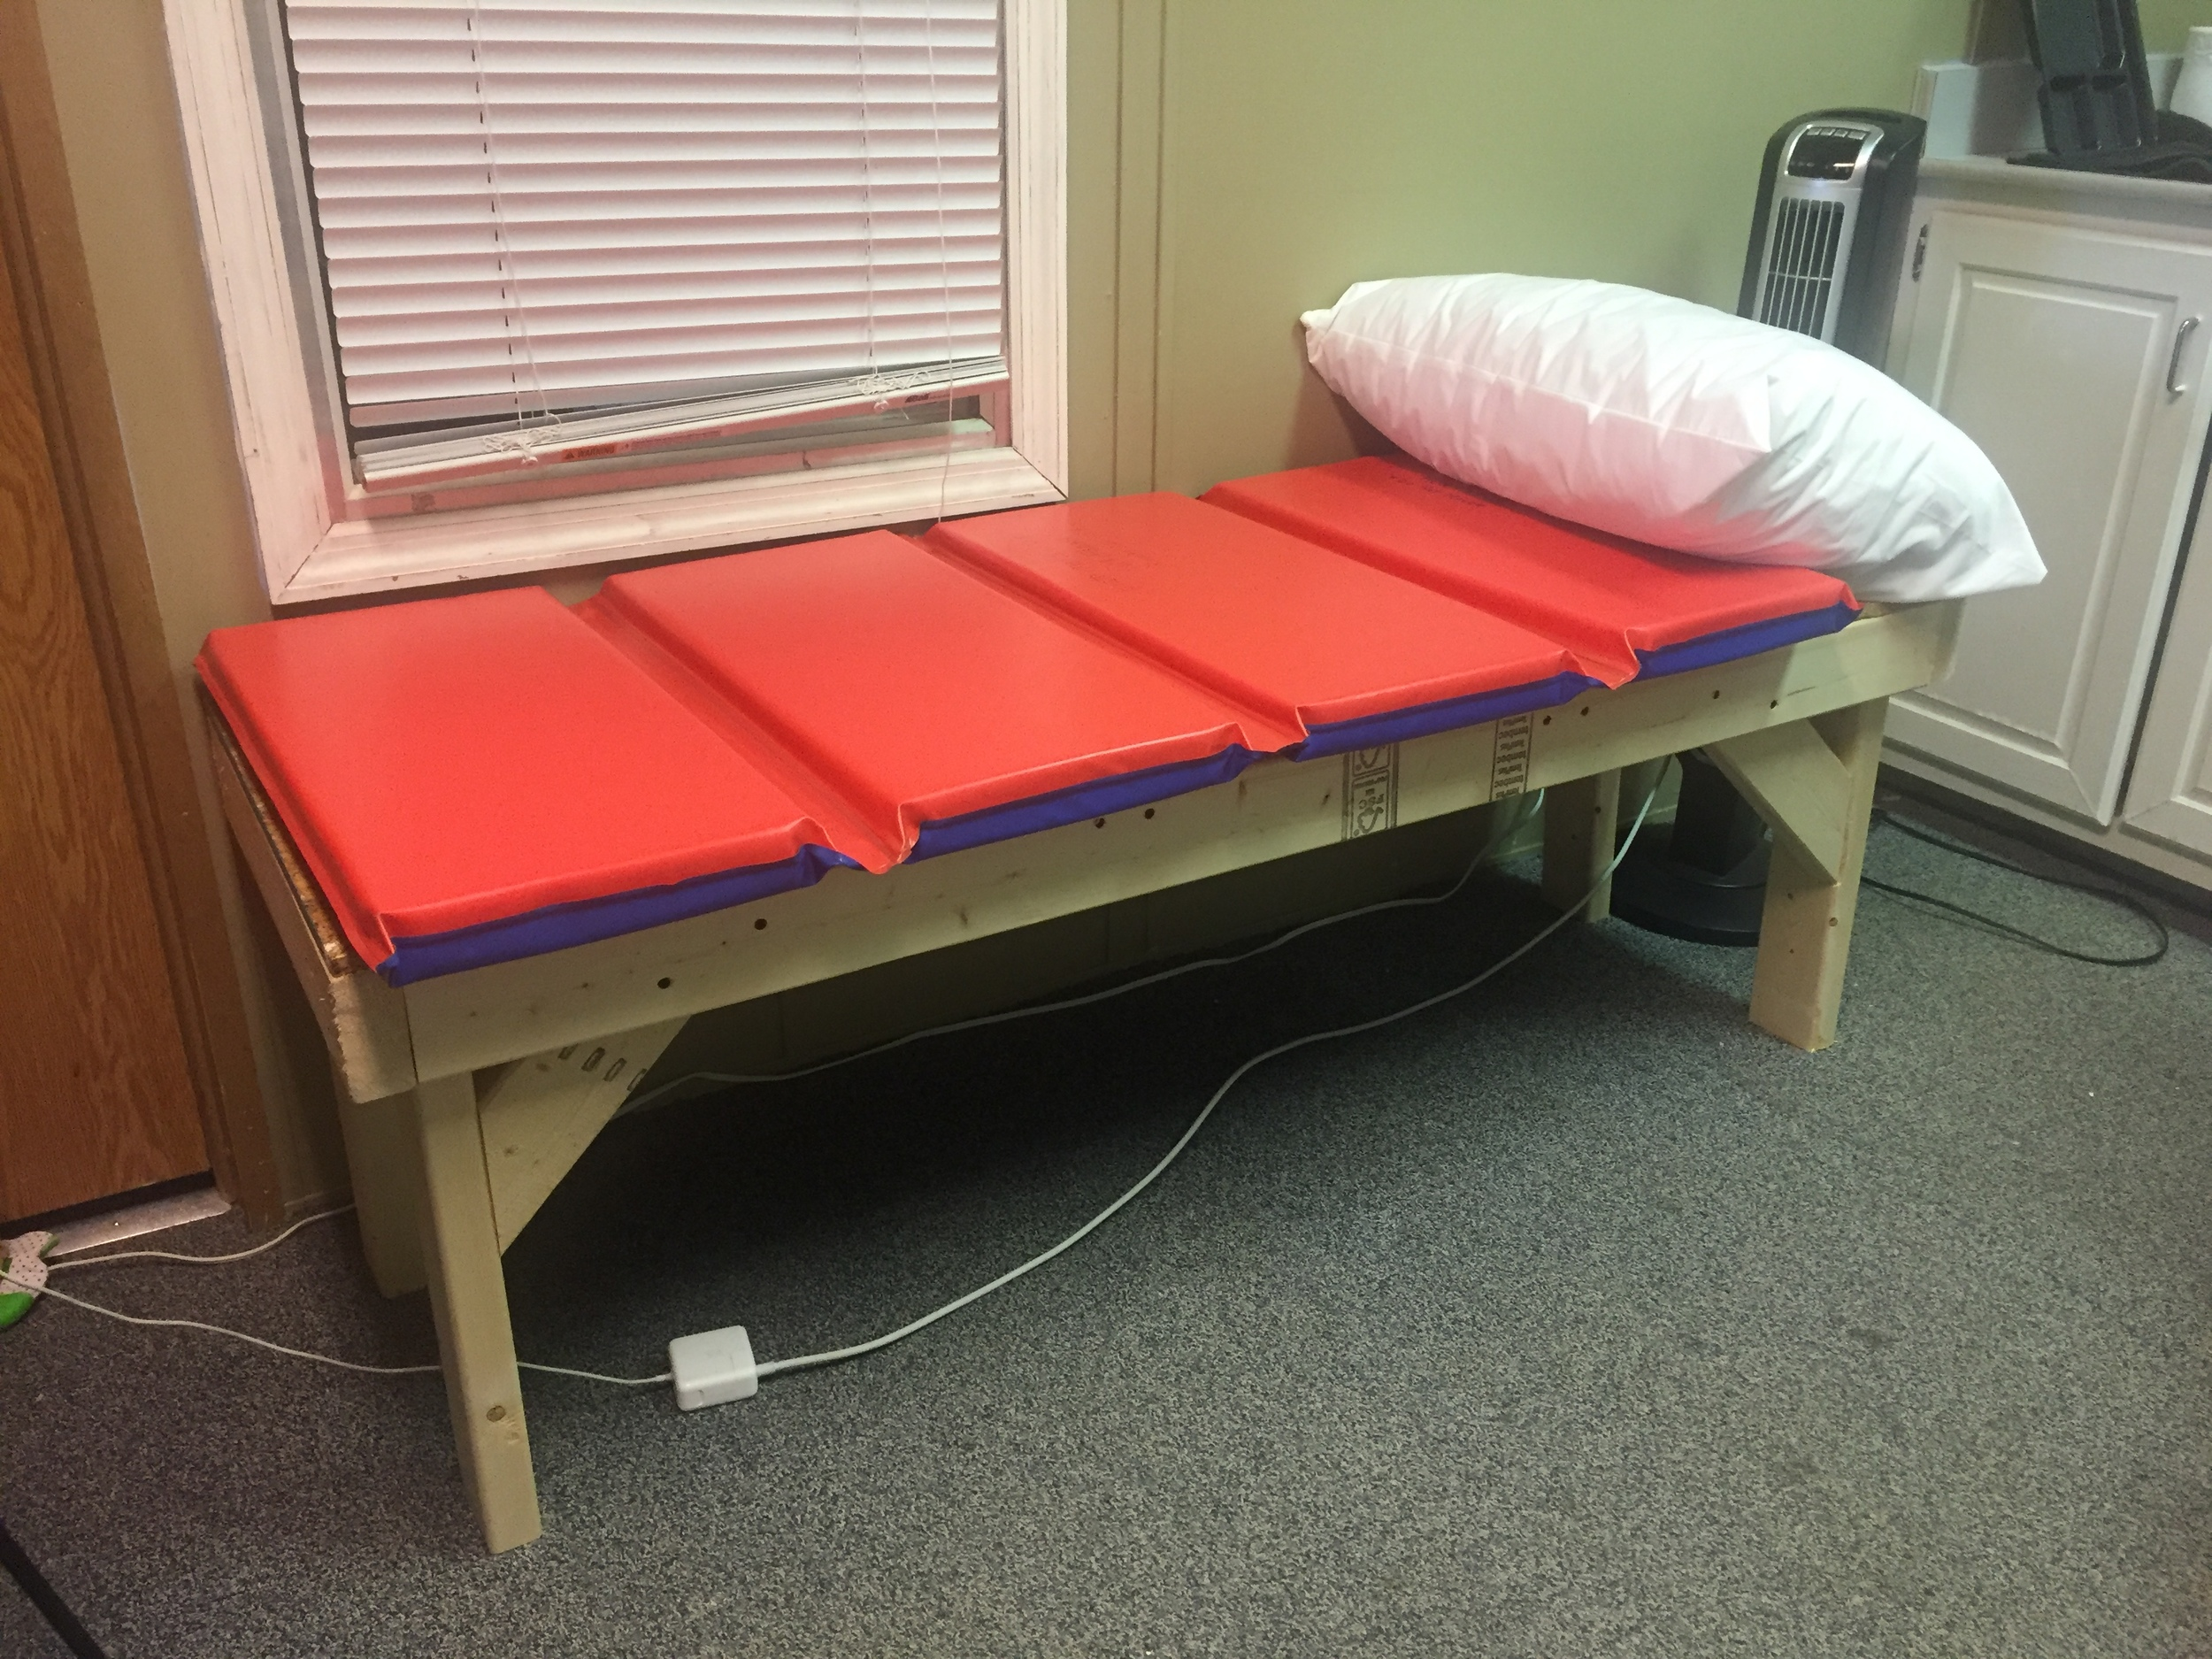 The end product? The first phase of our sturdy cot ready to assist in conquering all future tummy aches and pains!